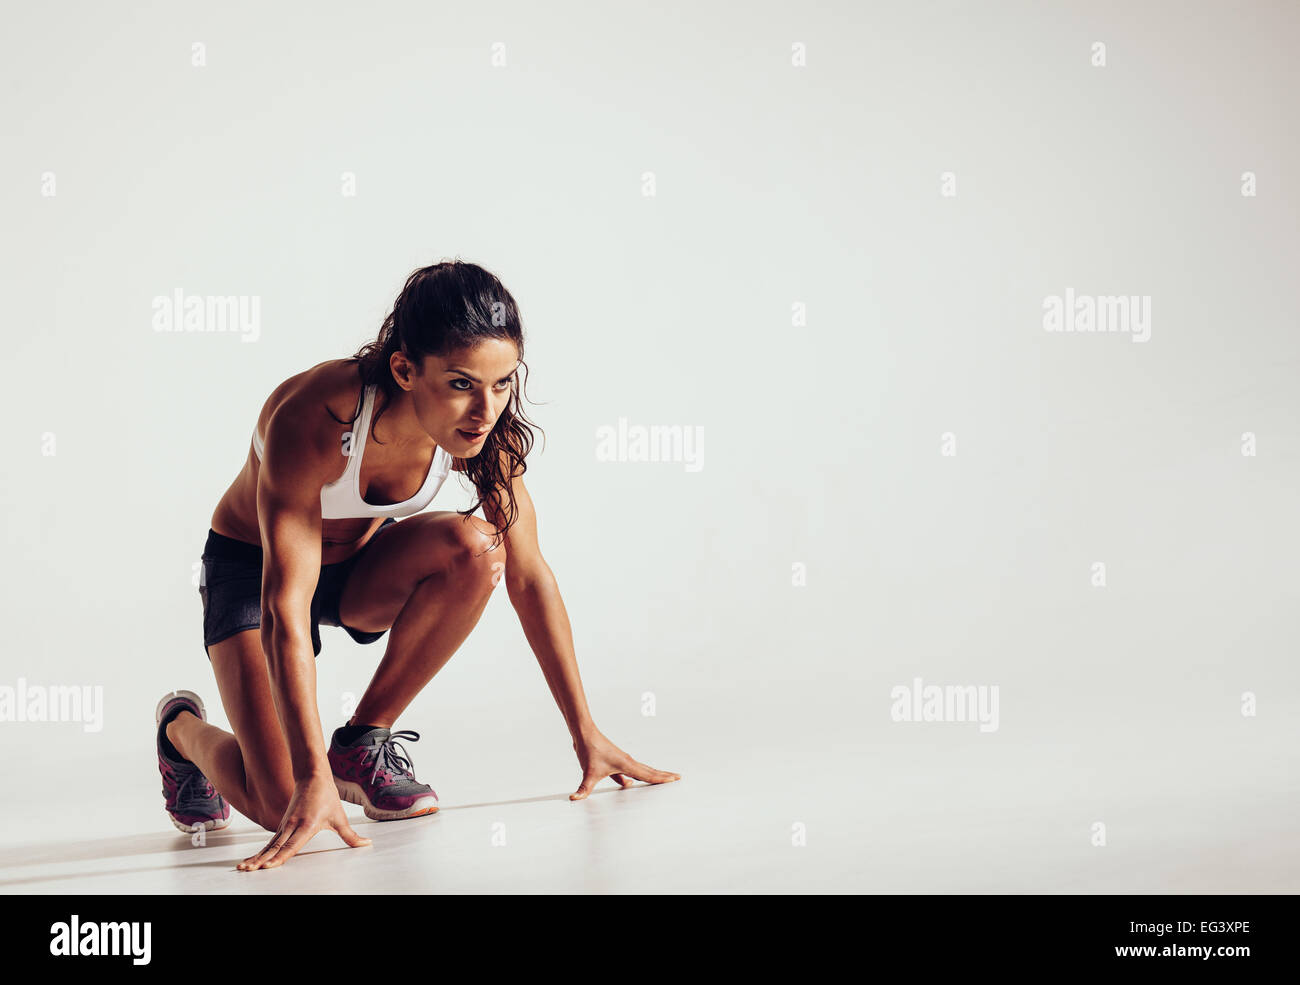 Female athlete in position ready to run over grey background. Determined young woman ready for a sprint. Stock Photo